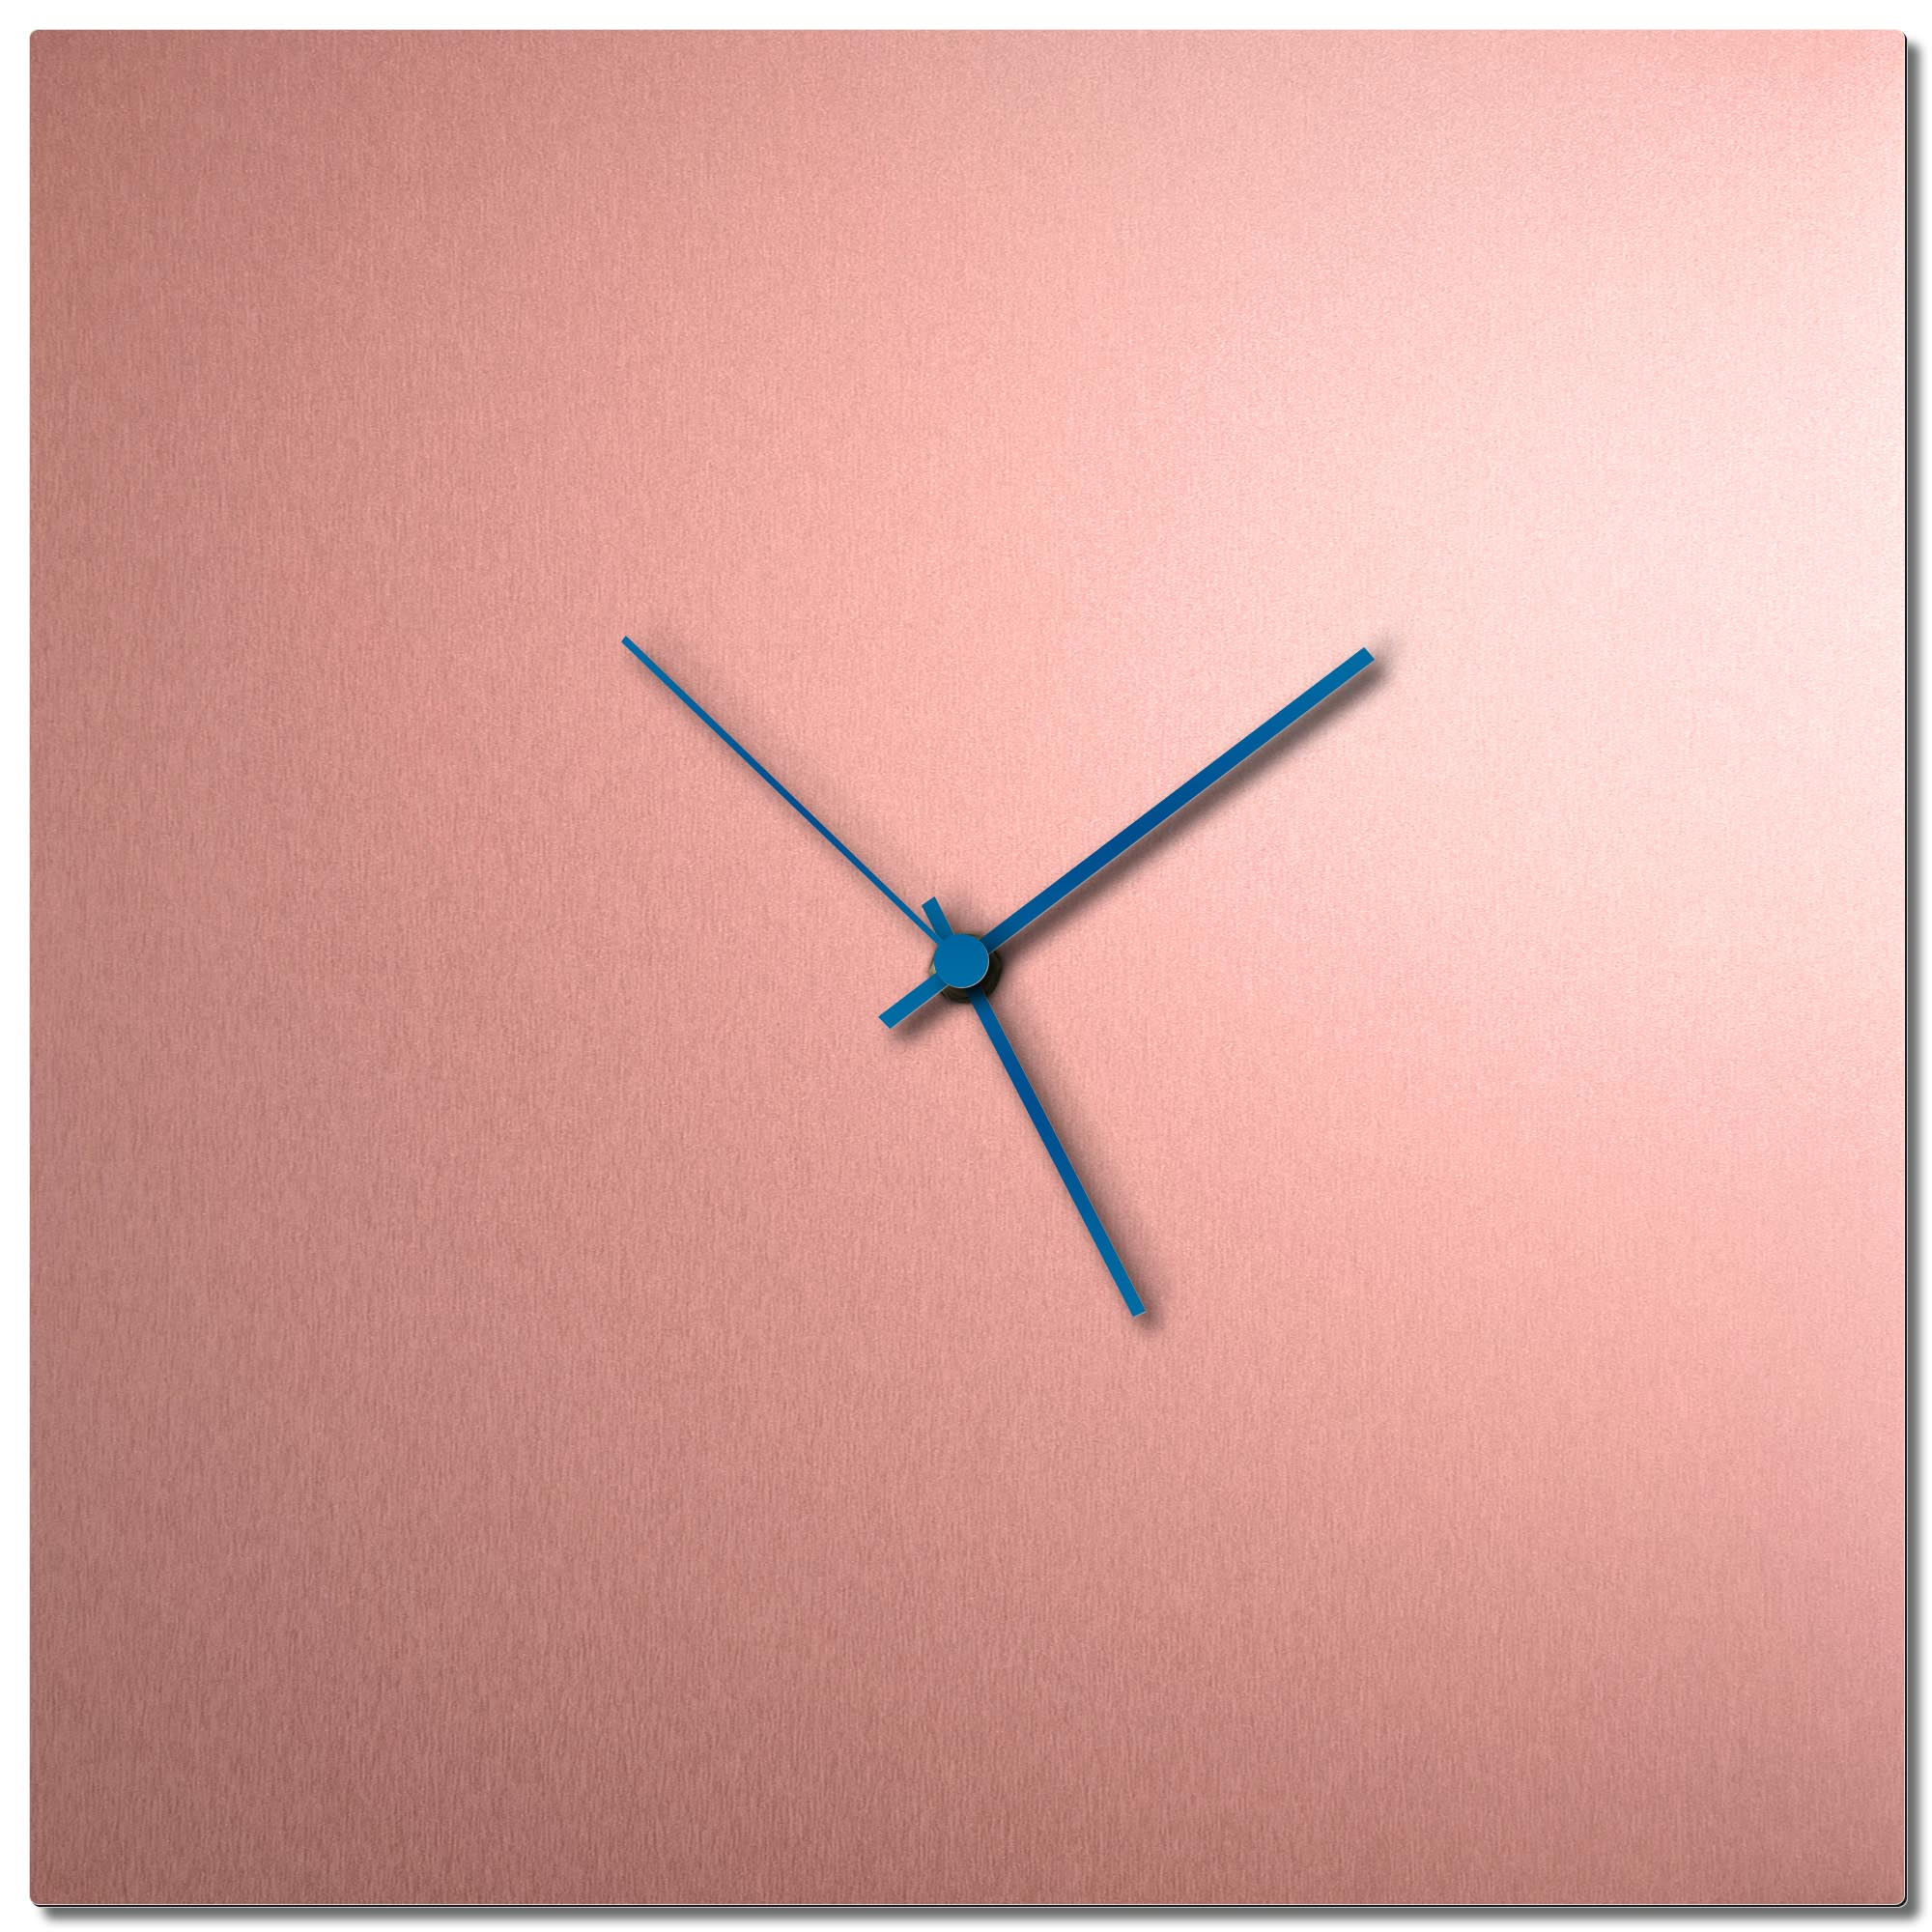 Adam Schwoeppe 'Coppersmith Square Clock Large Blue' Midcentury Modern Style Wall Clock